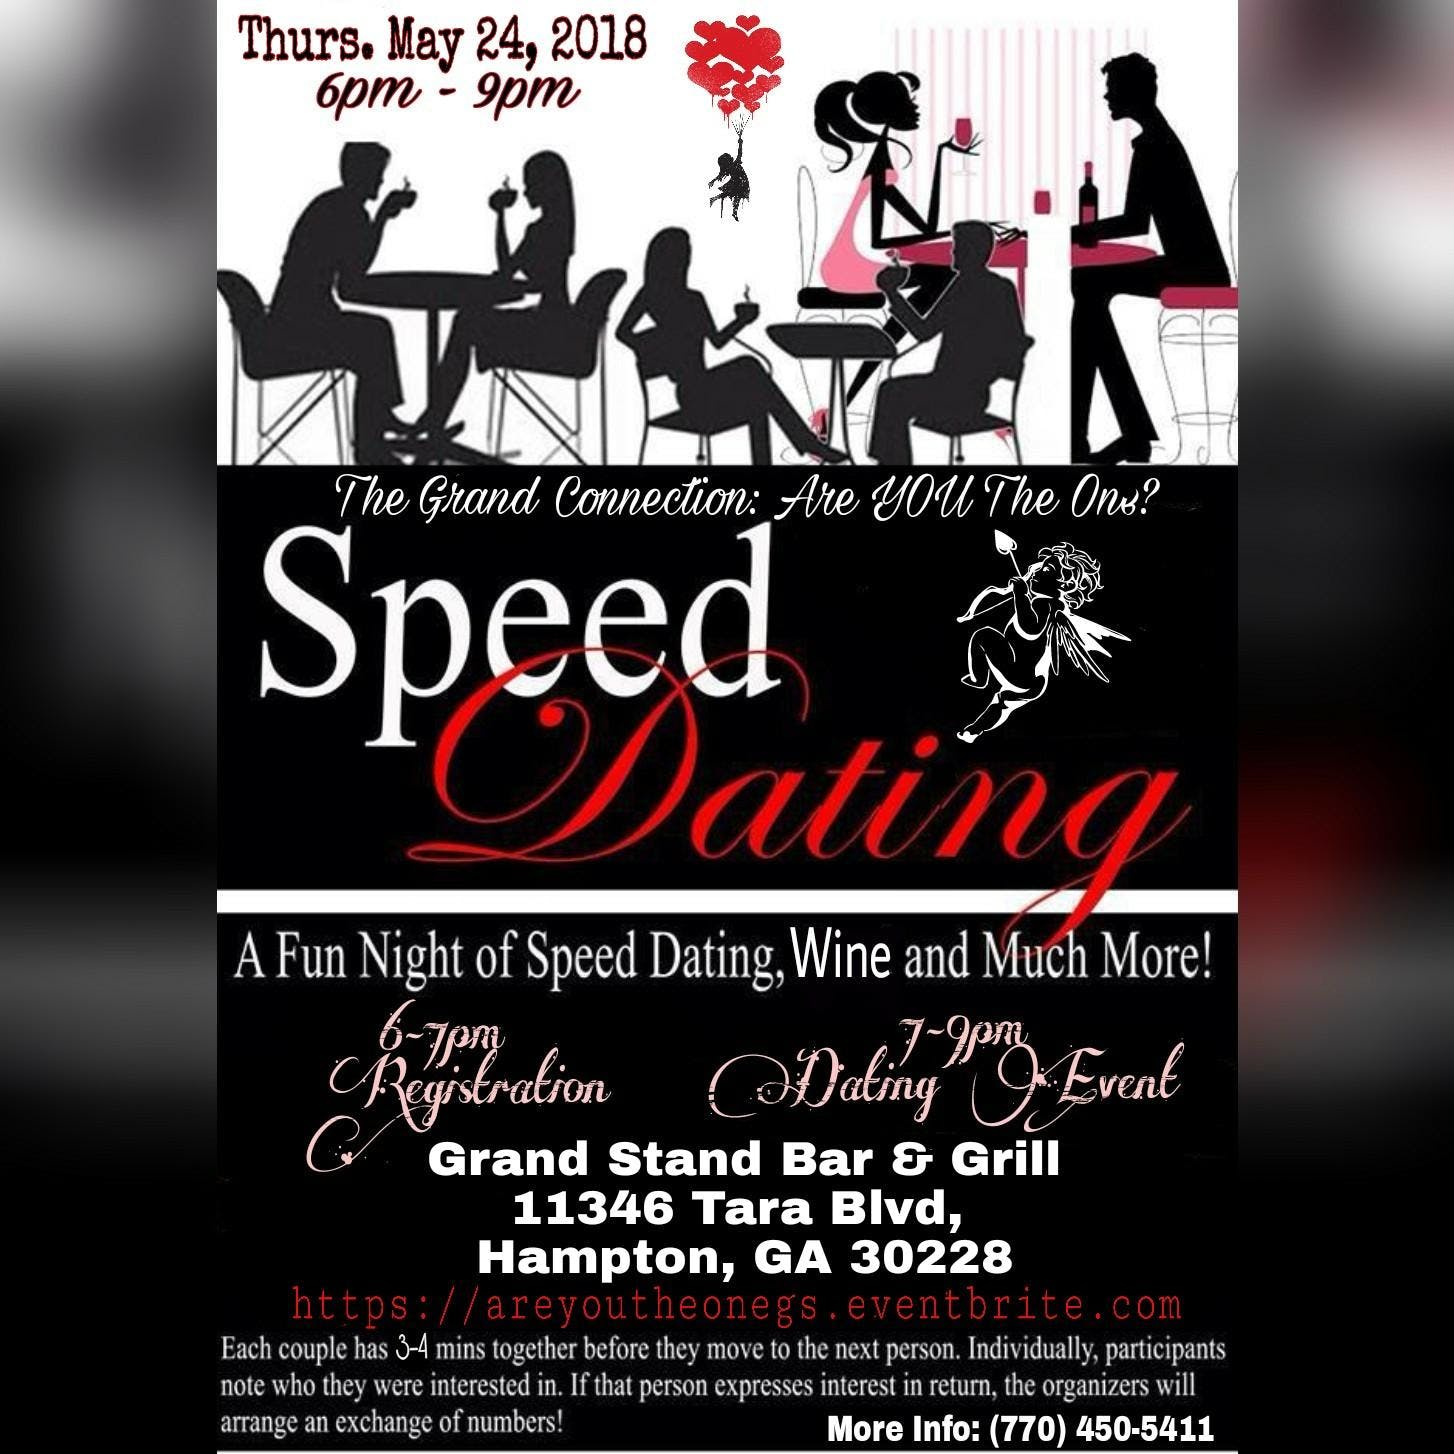 Unfortunately all. I can now add speed dating to my list of things I have experienced!